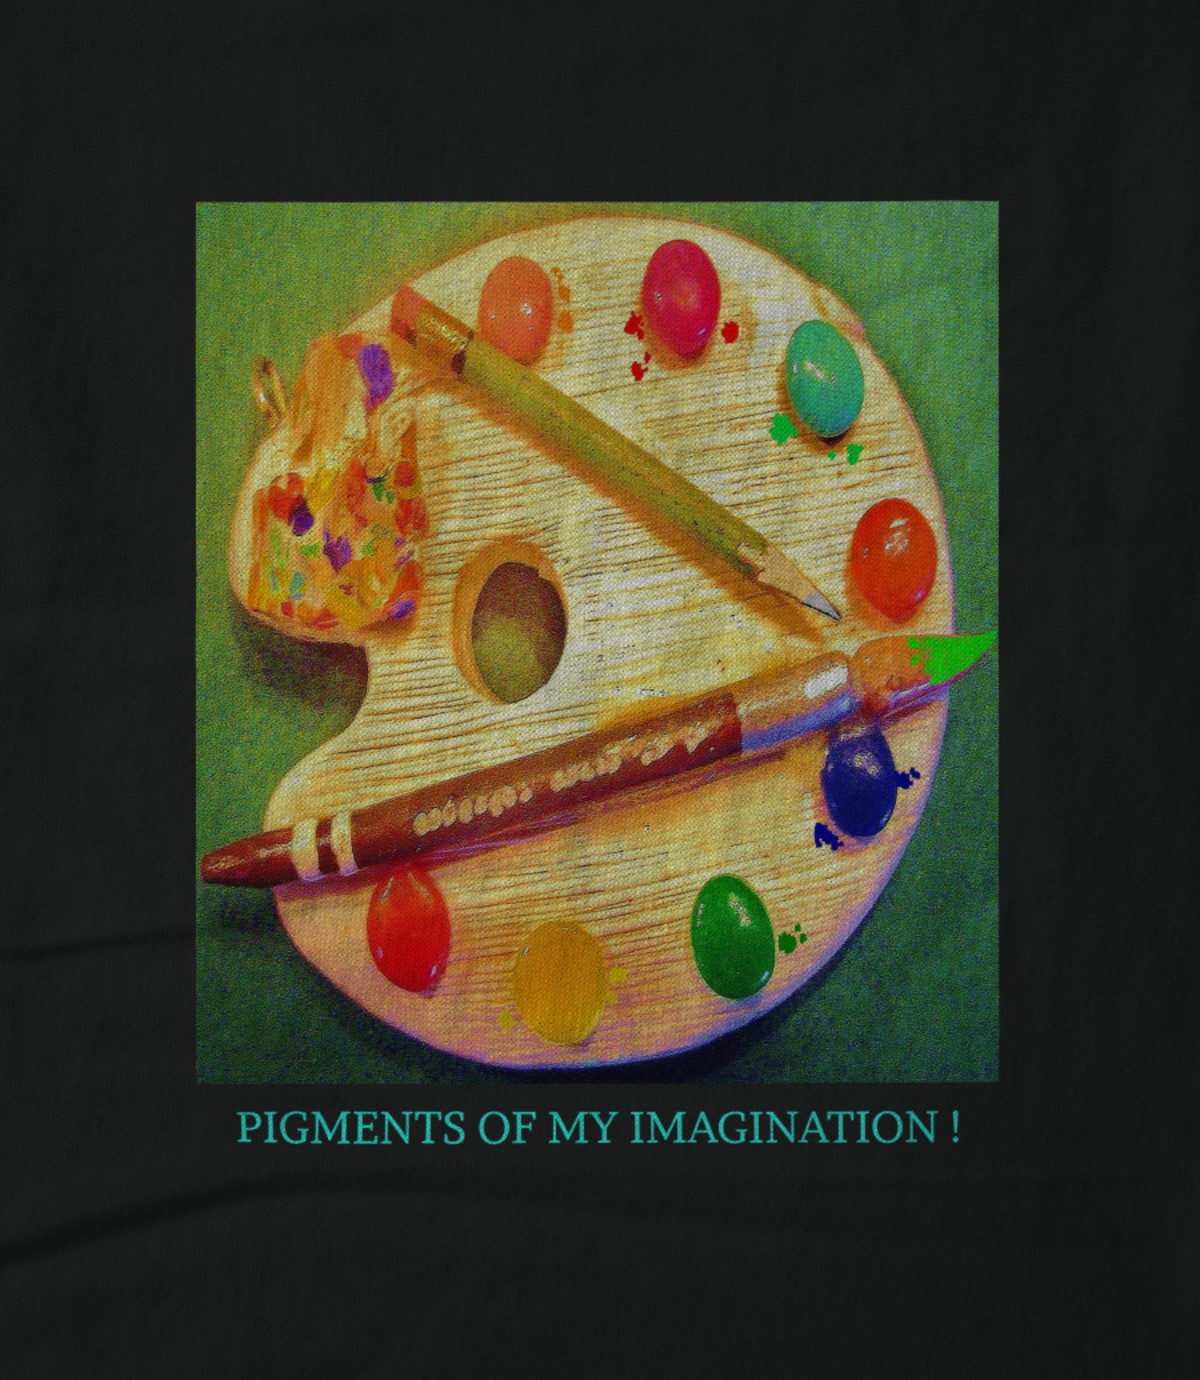 Matthew f  blowers iii pigments of my imagination  1505915409